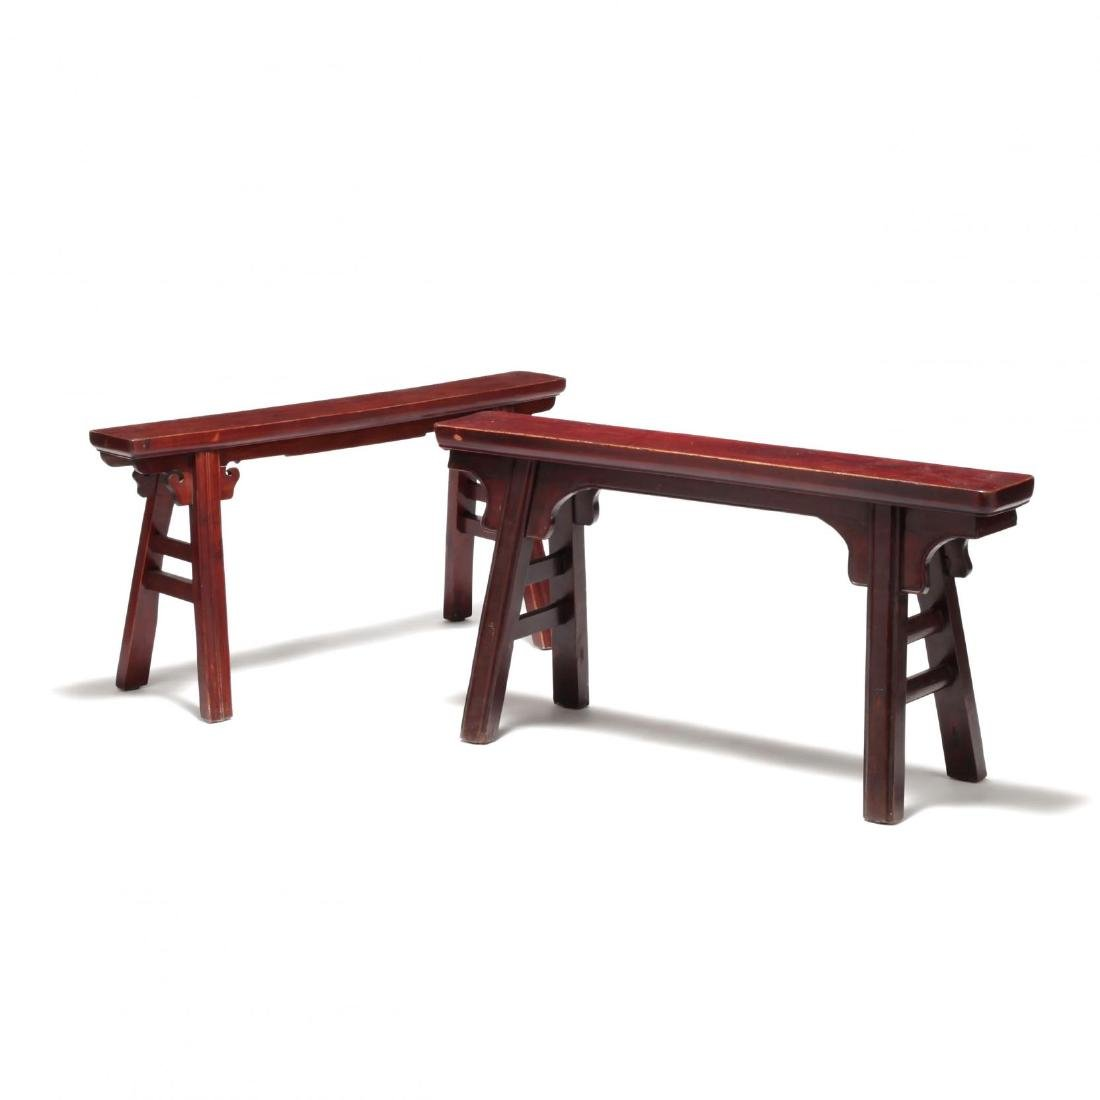 Two Chinese Wooden Benches